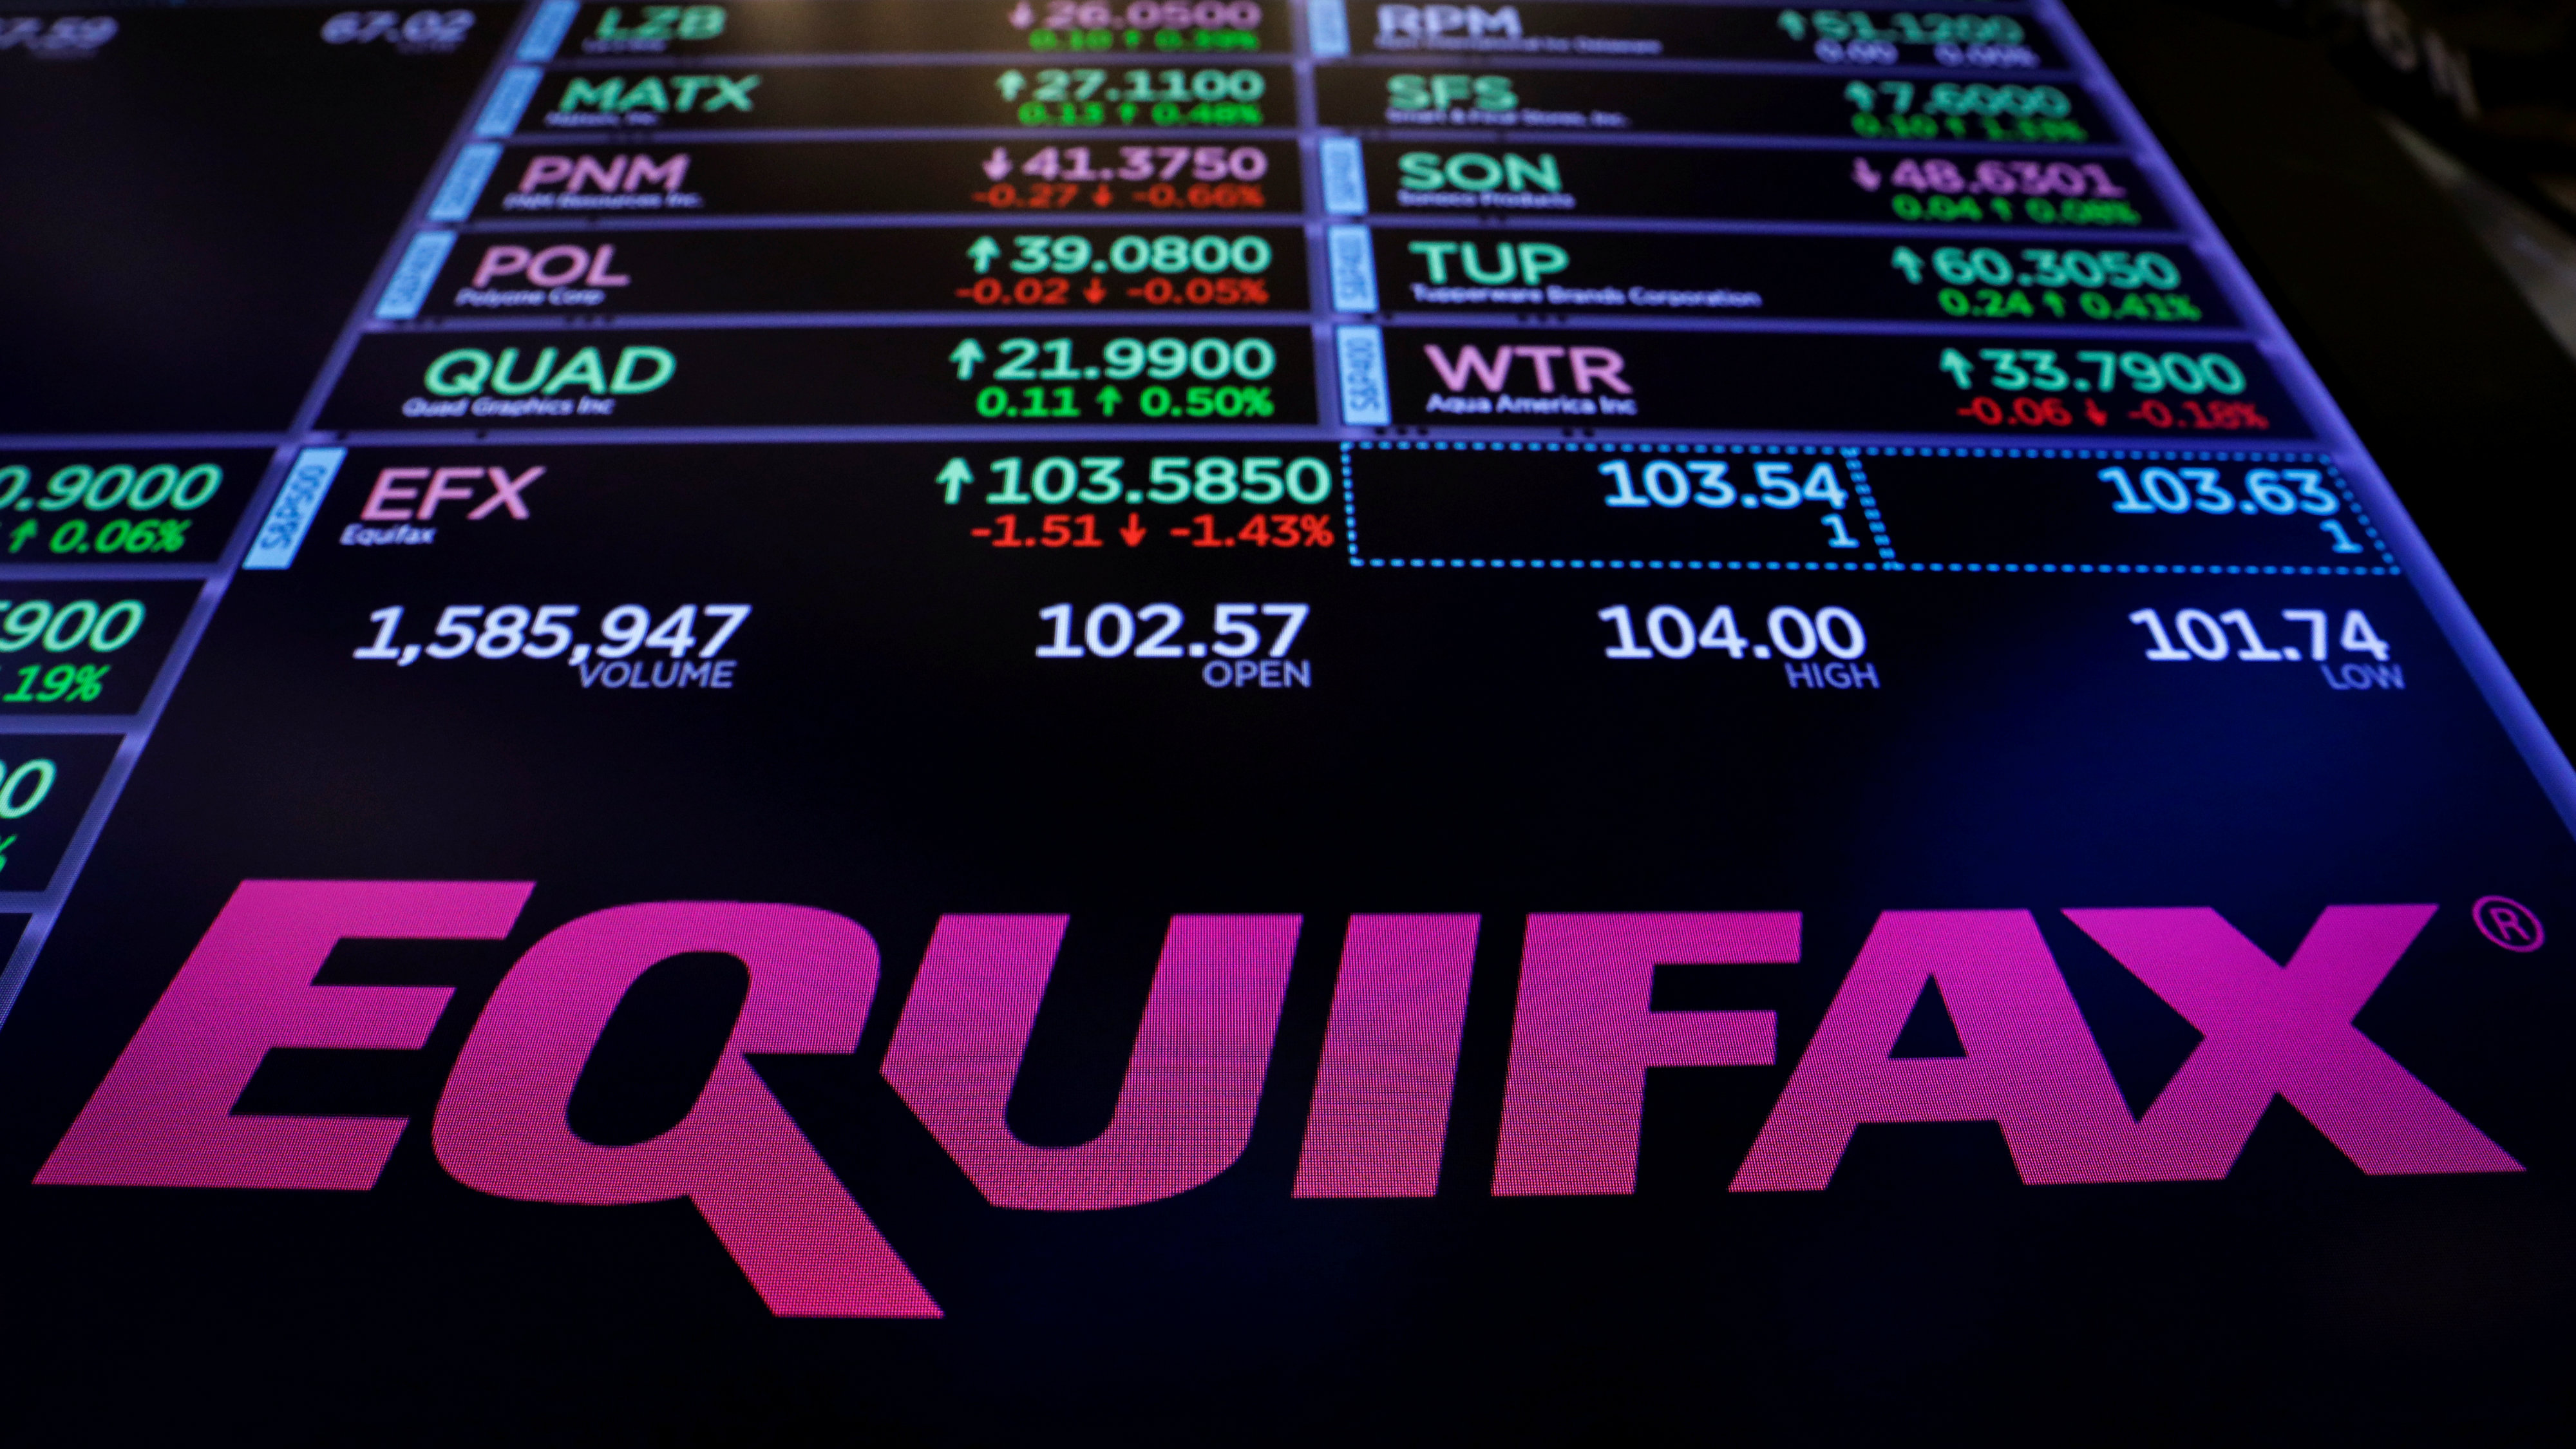 equifax security breach news